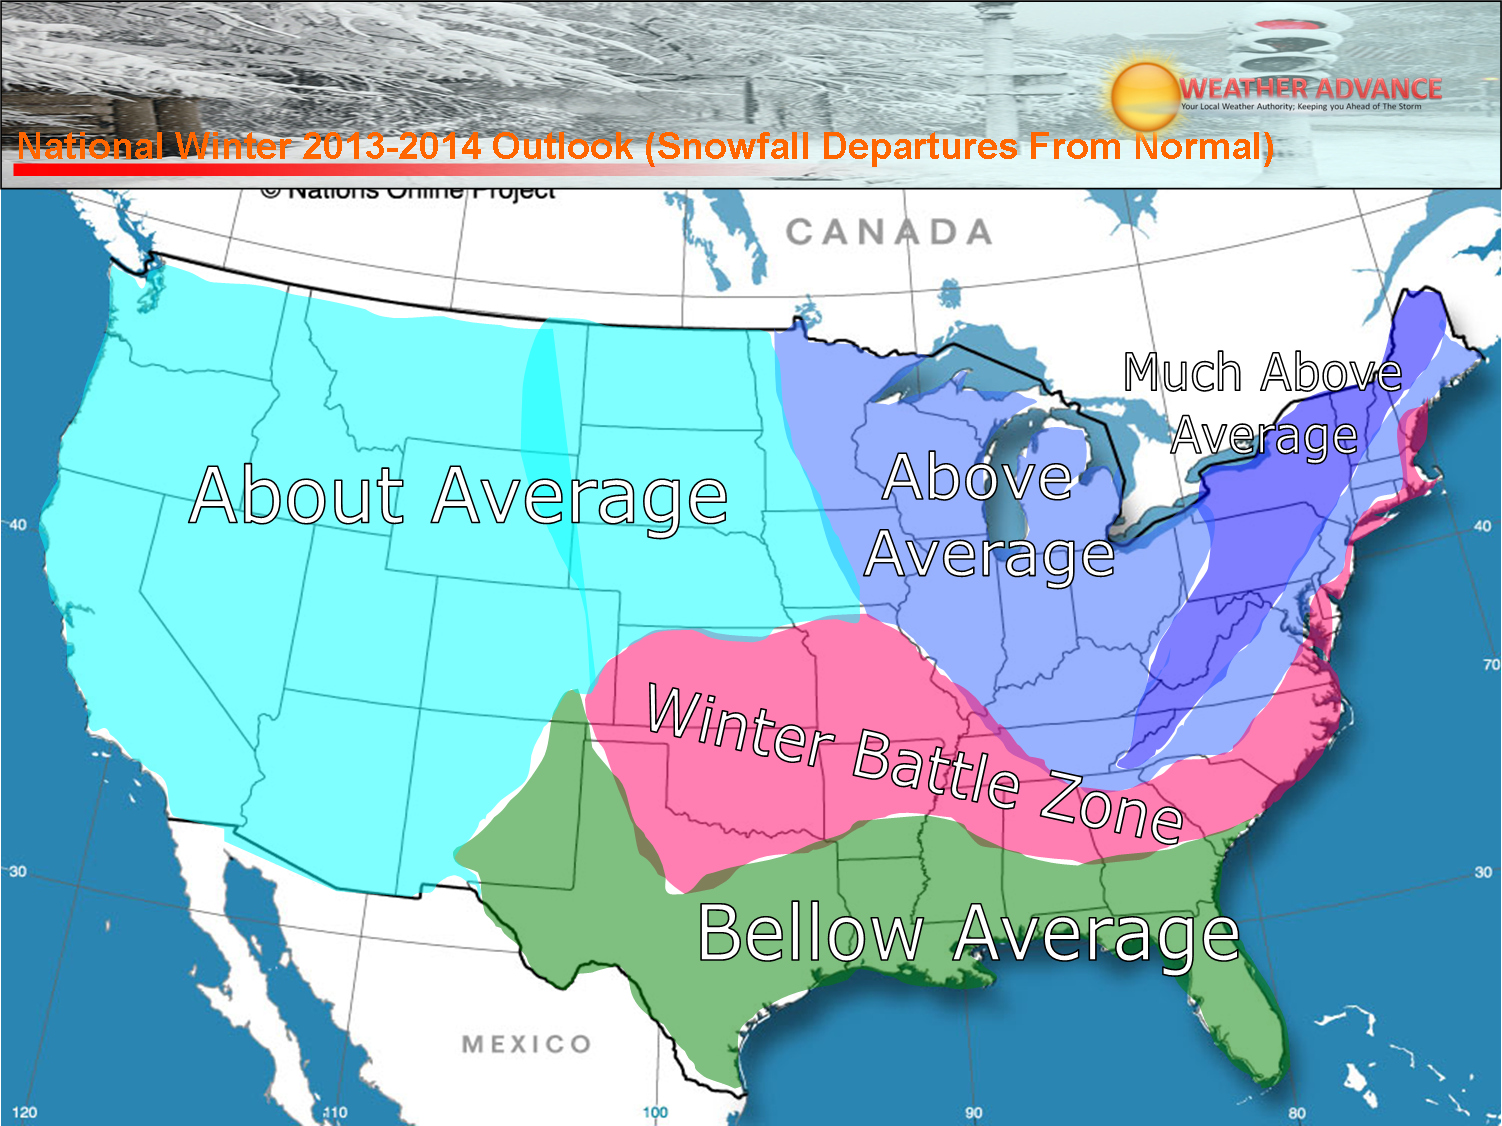 USA Winter Weather Forecast for 2014 from WeatherAdvance.com ...